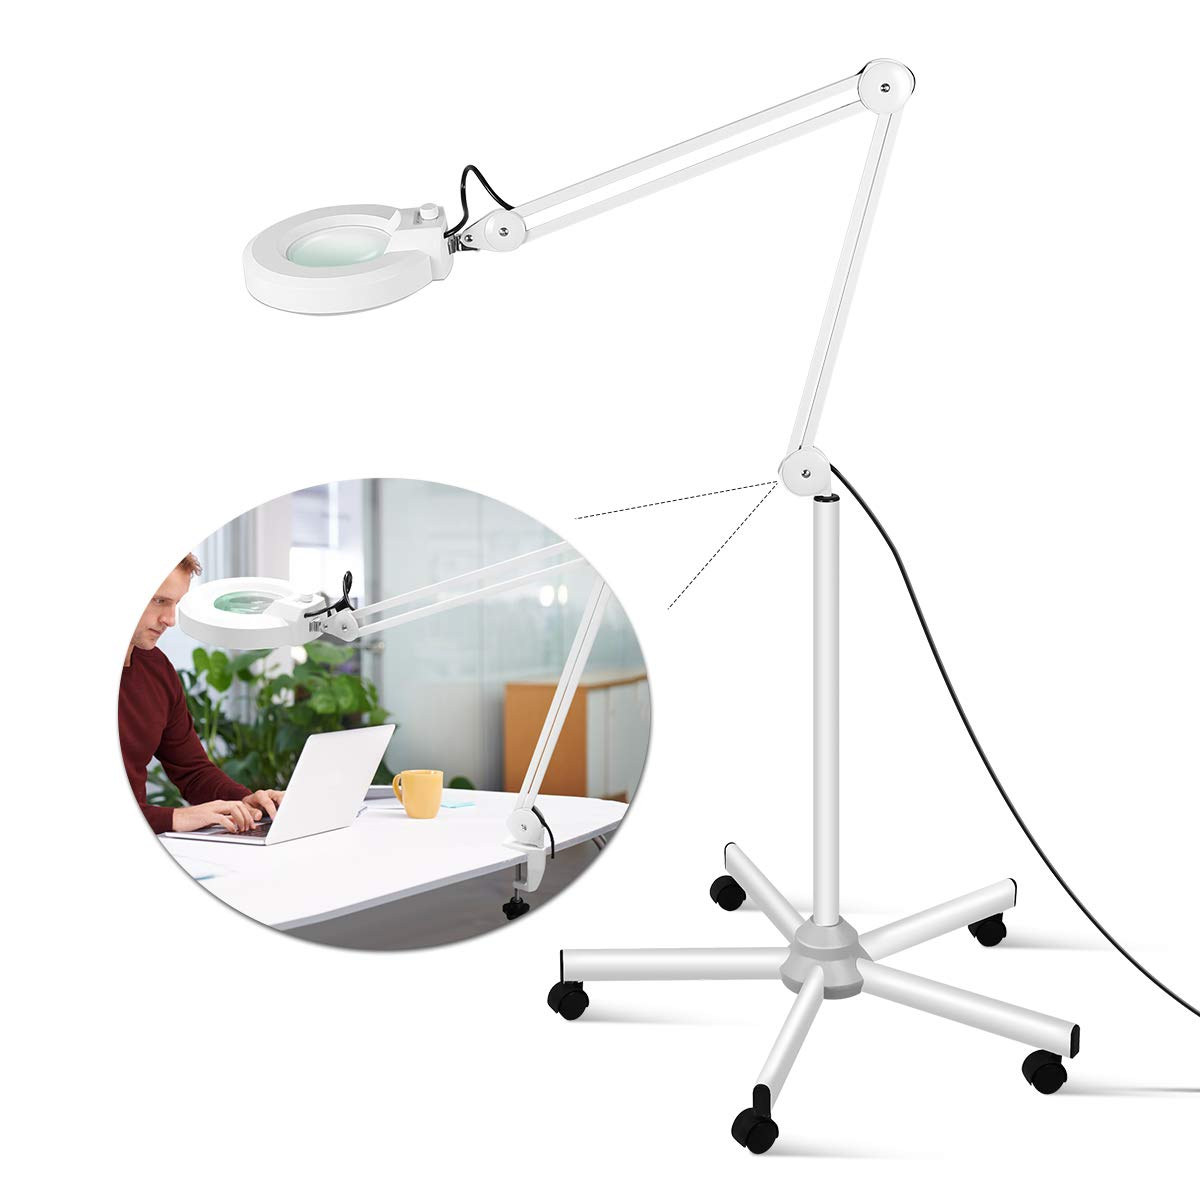 LED Floor Lamp, Innqoo LED Magnifying Desk Clamp Lamp Lighted Magnifier for Reading, Crafts & Pro Tasks, Adjustable & Dimmable